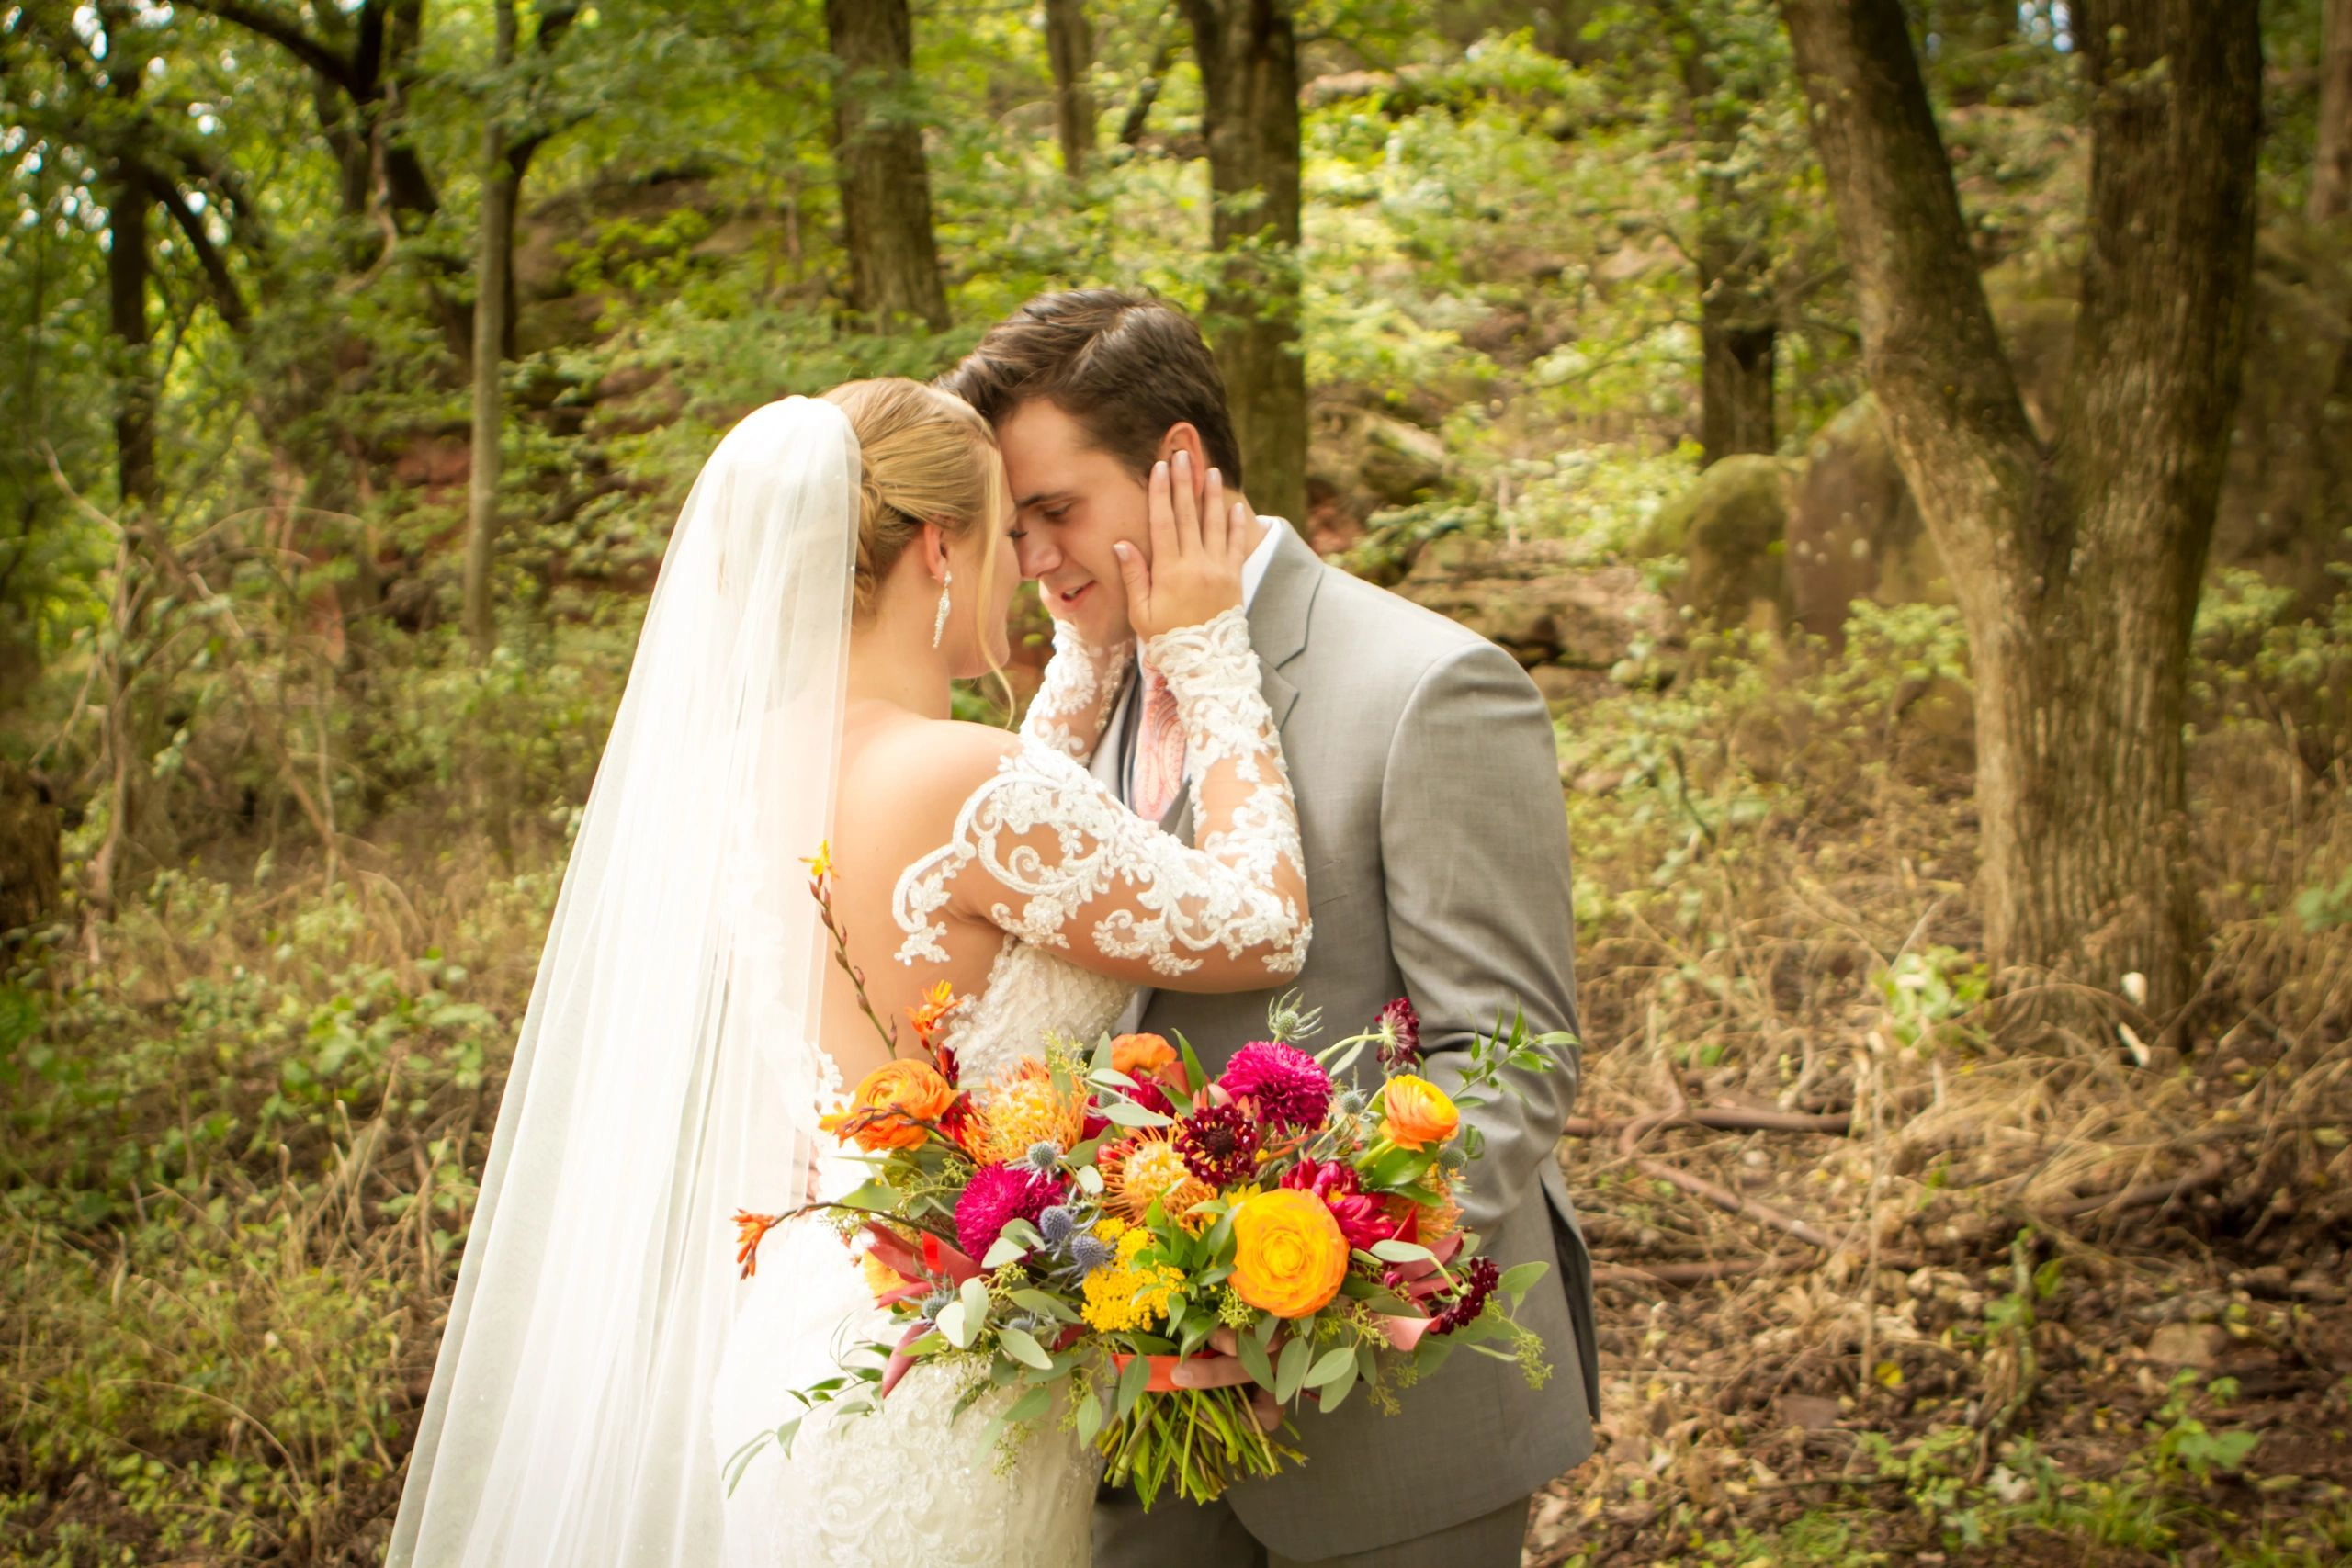 Wedding photo of bride and groom in the woods embracing one another.